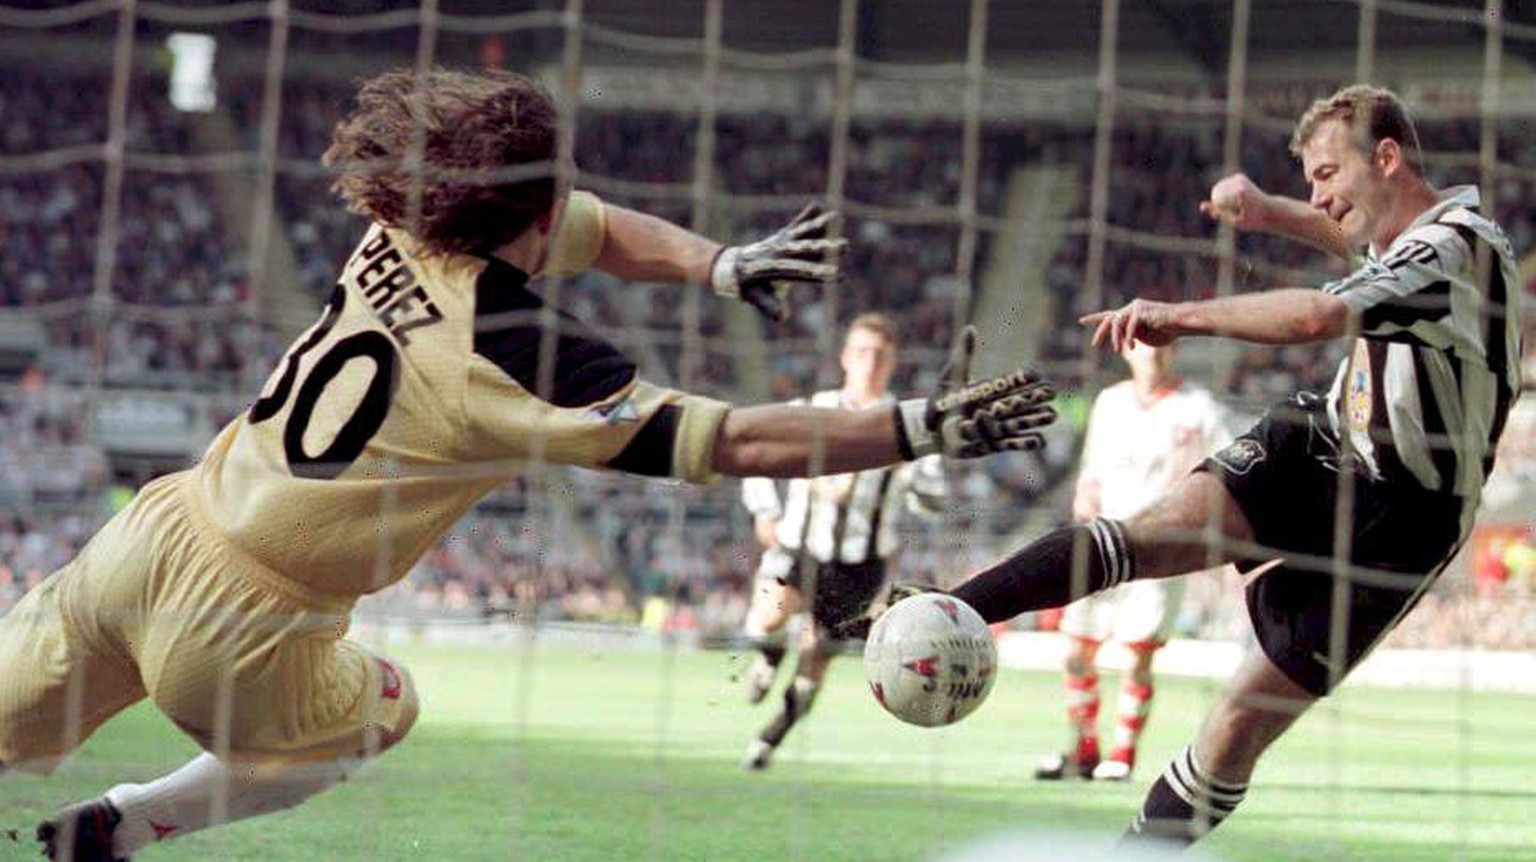 Newcastle's Alan Shearer scores Newcastle's late equaliser against Sunderland's goalie Lionel Perez at St James' Park 05 April. The match ended in a 1-1 draw. (KEYSTONE/PA/OWEN HUMPHREYS)